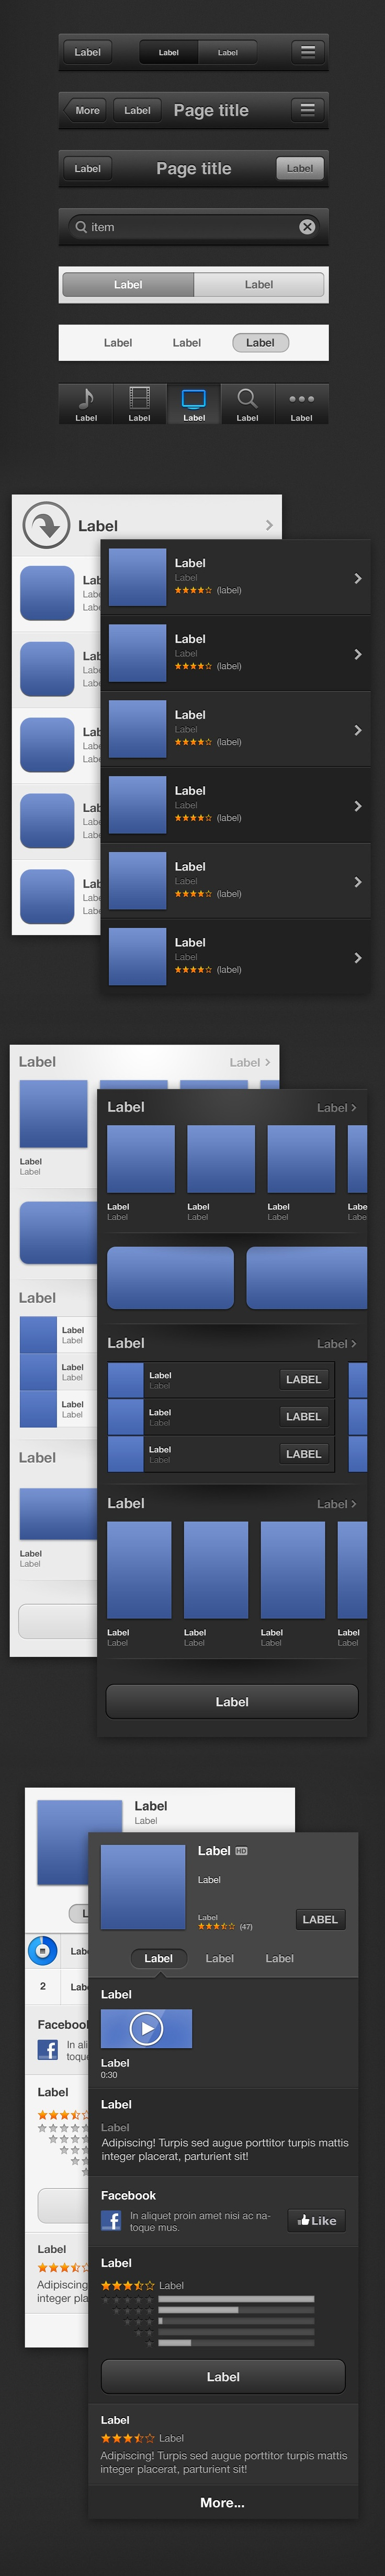 iOS 6, iTunes & Apple Store GUI / by Christophe Béghin